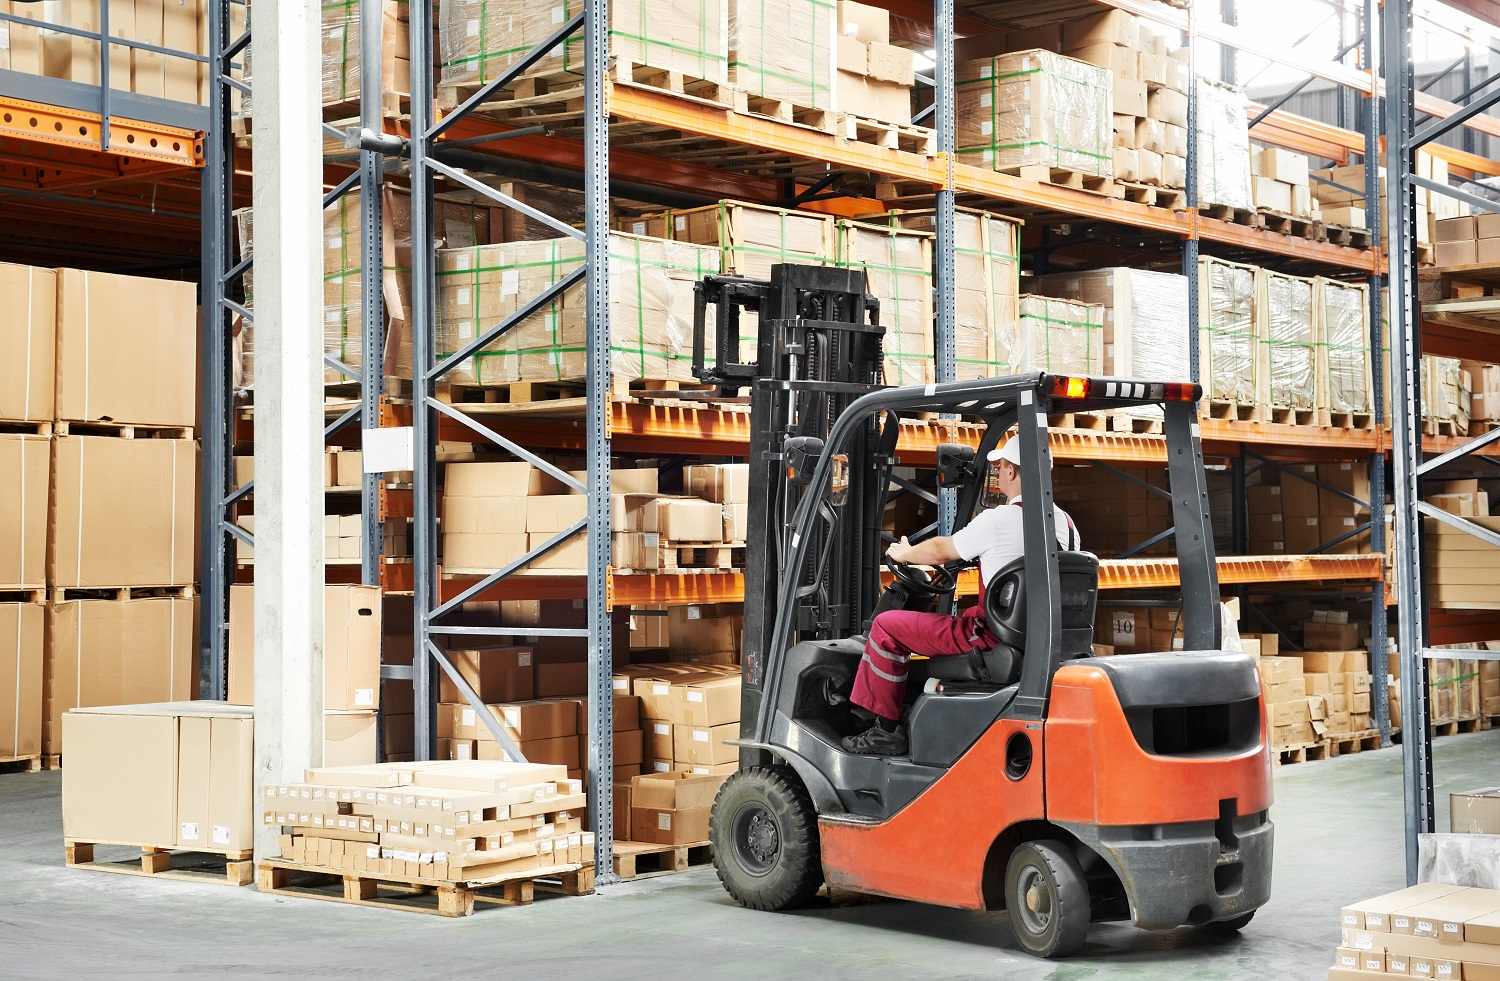 When Do Lift Truck Operators Need Conversion Training?